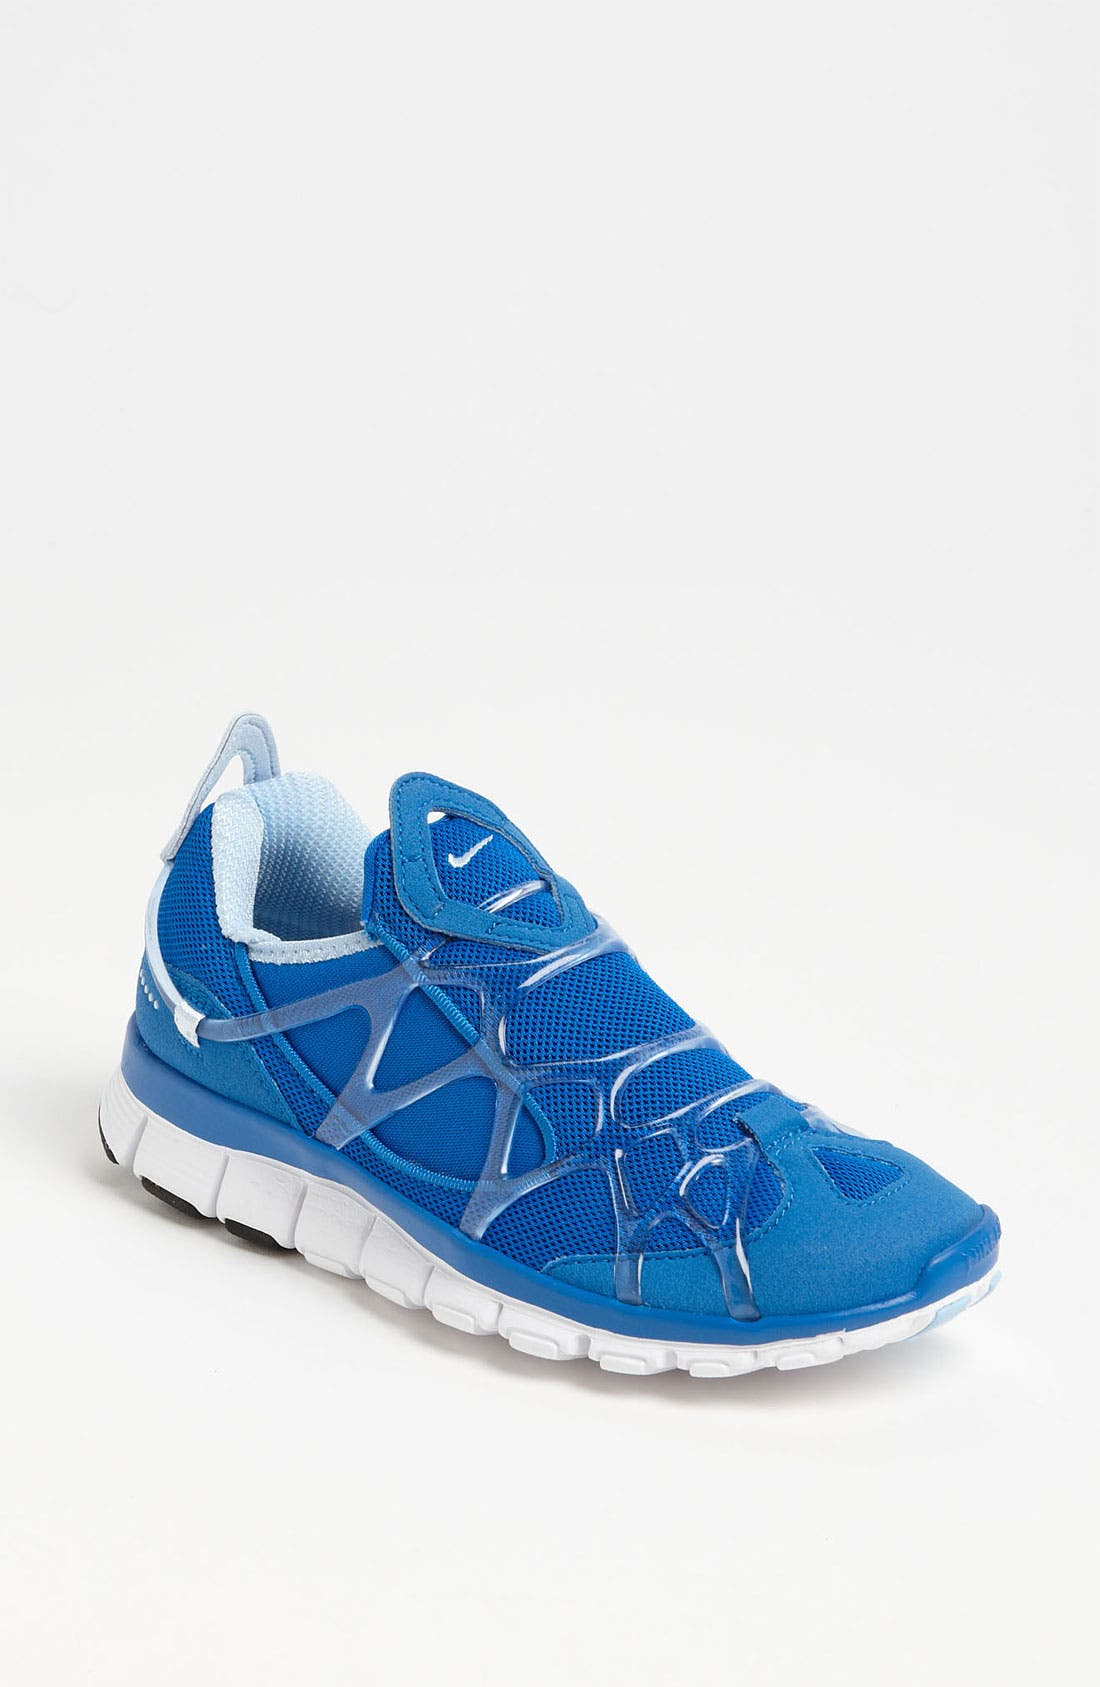 Alternate Image 1 Selected - Nike 'Kukini Free' Running Shoe (Women)